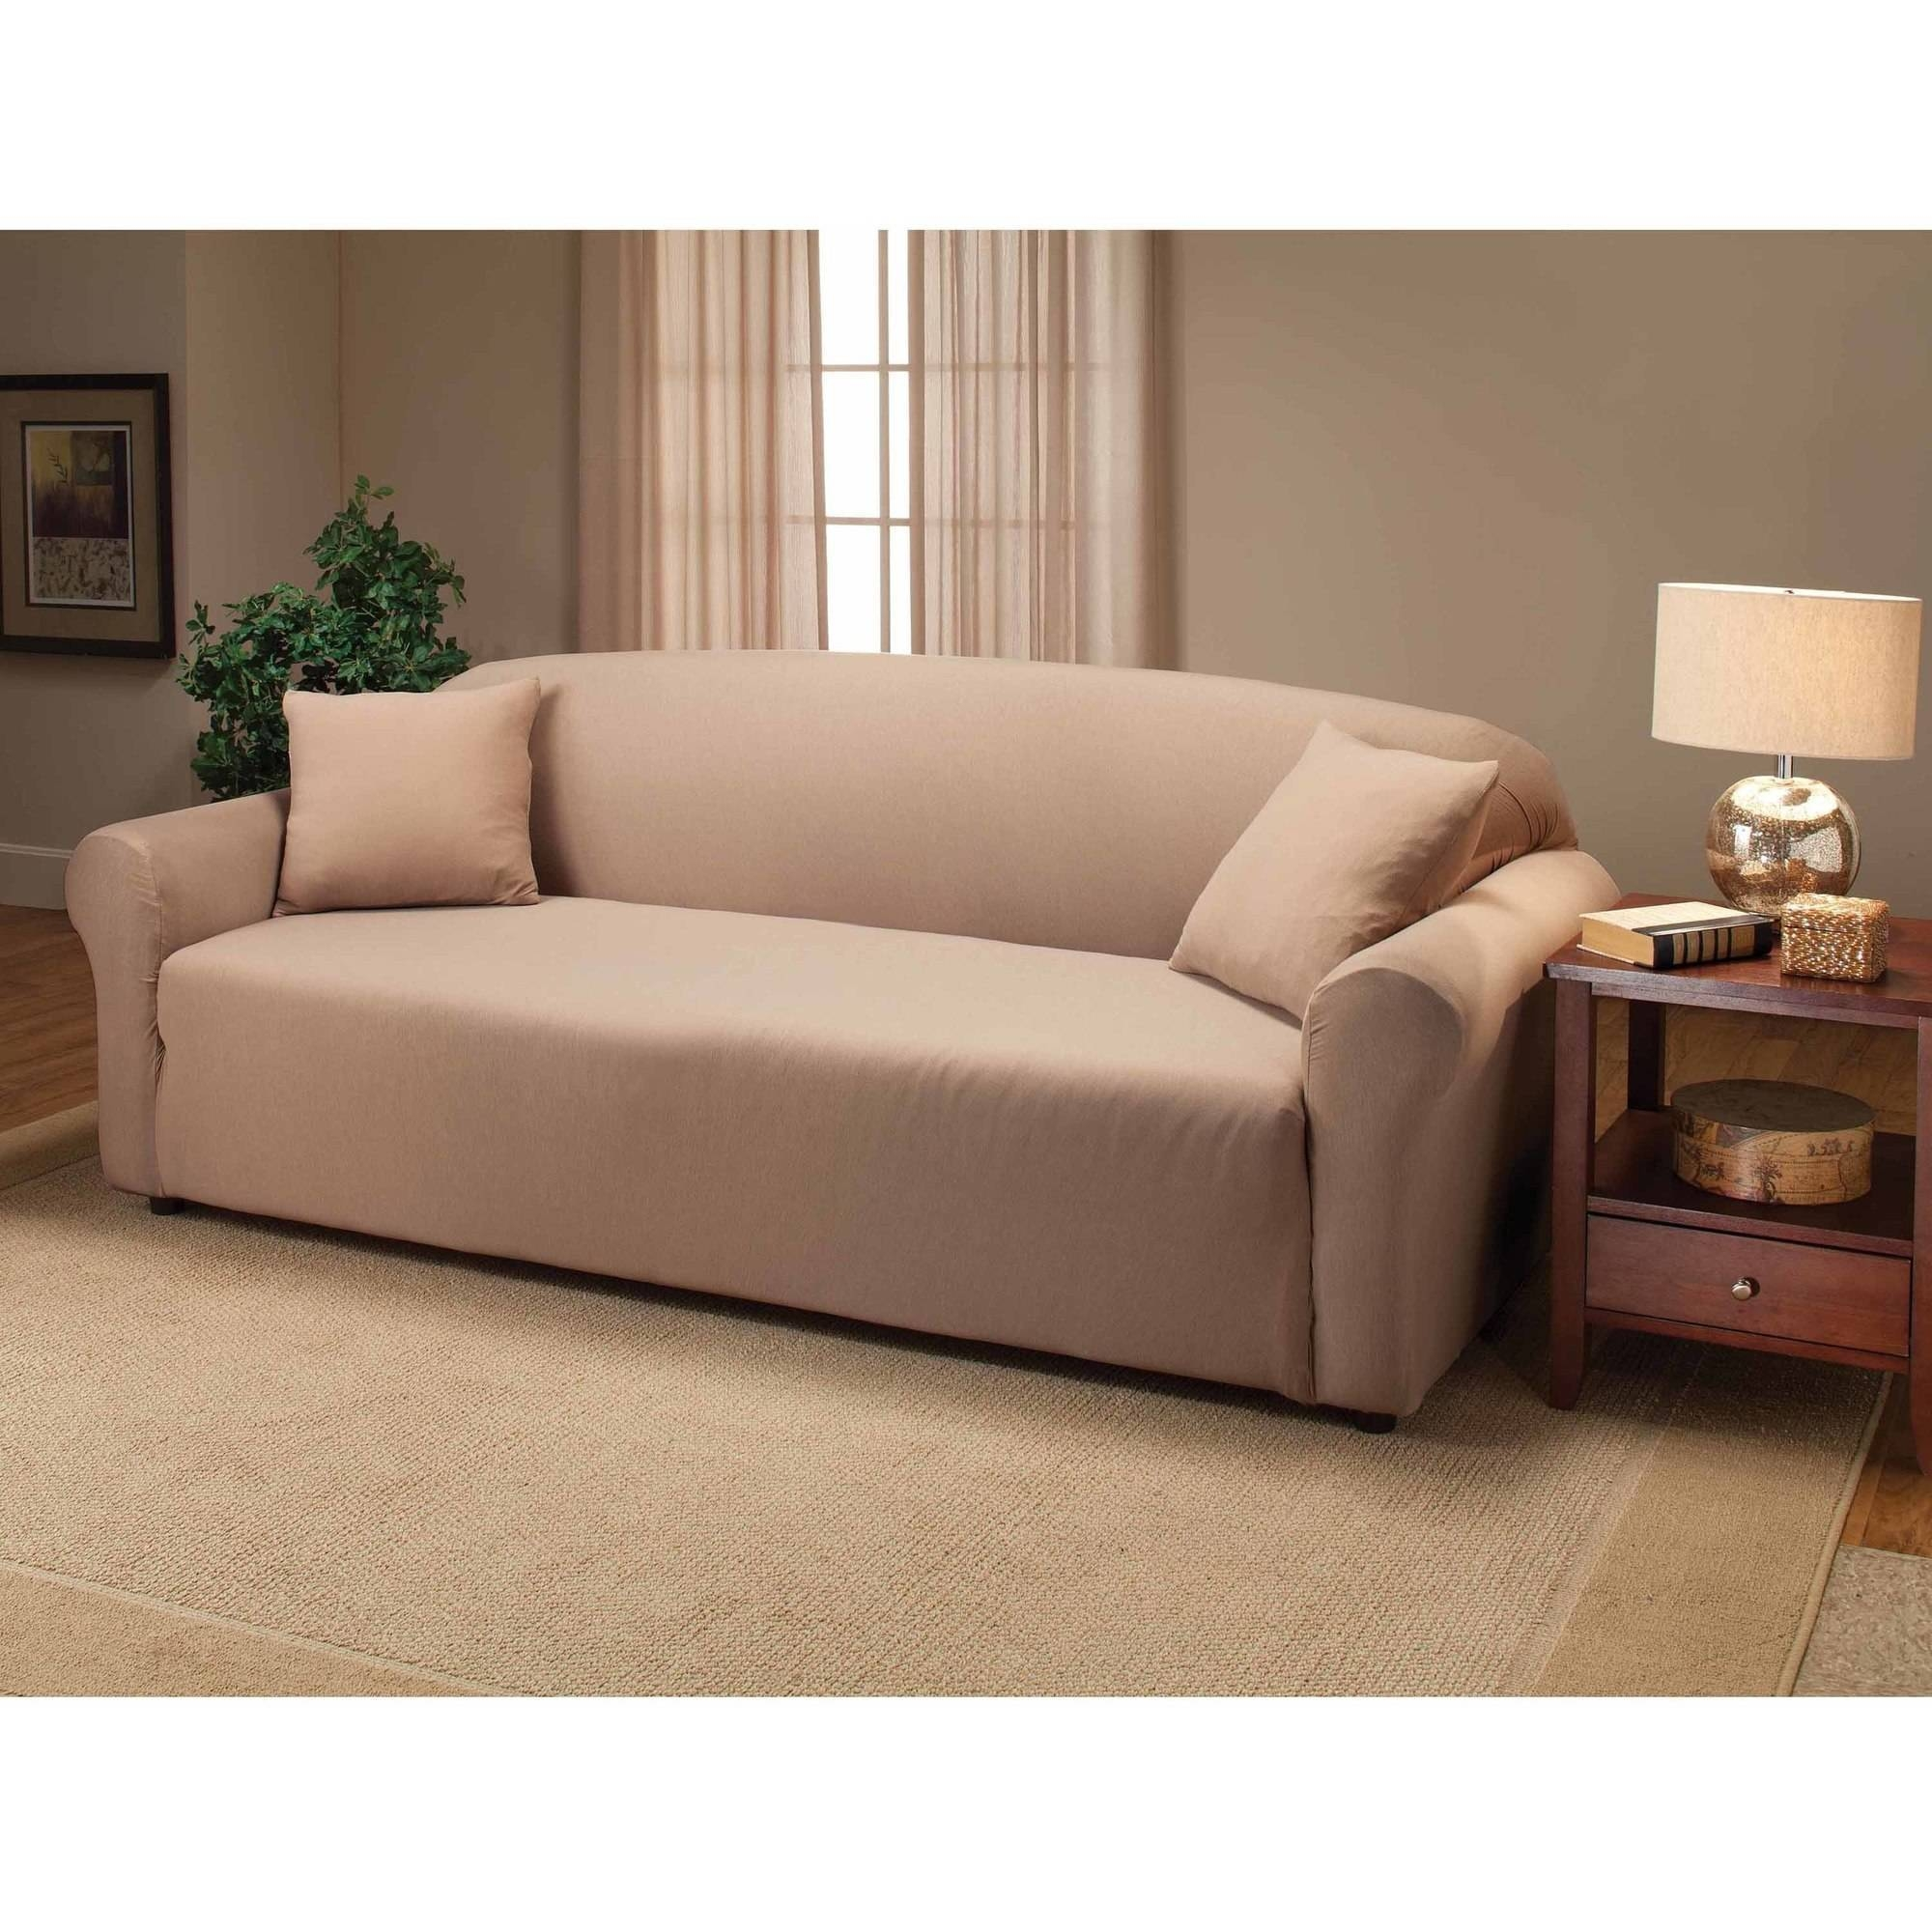 Stretch Suede Sofa Slipcovers with regard to Suede Slipcovers For Sofas (Image 8 of 15)